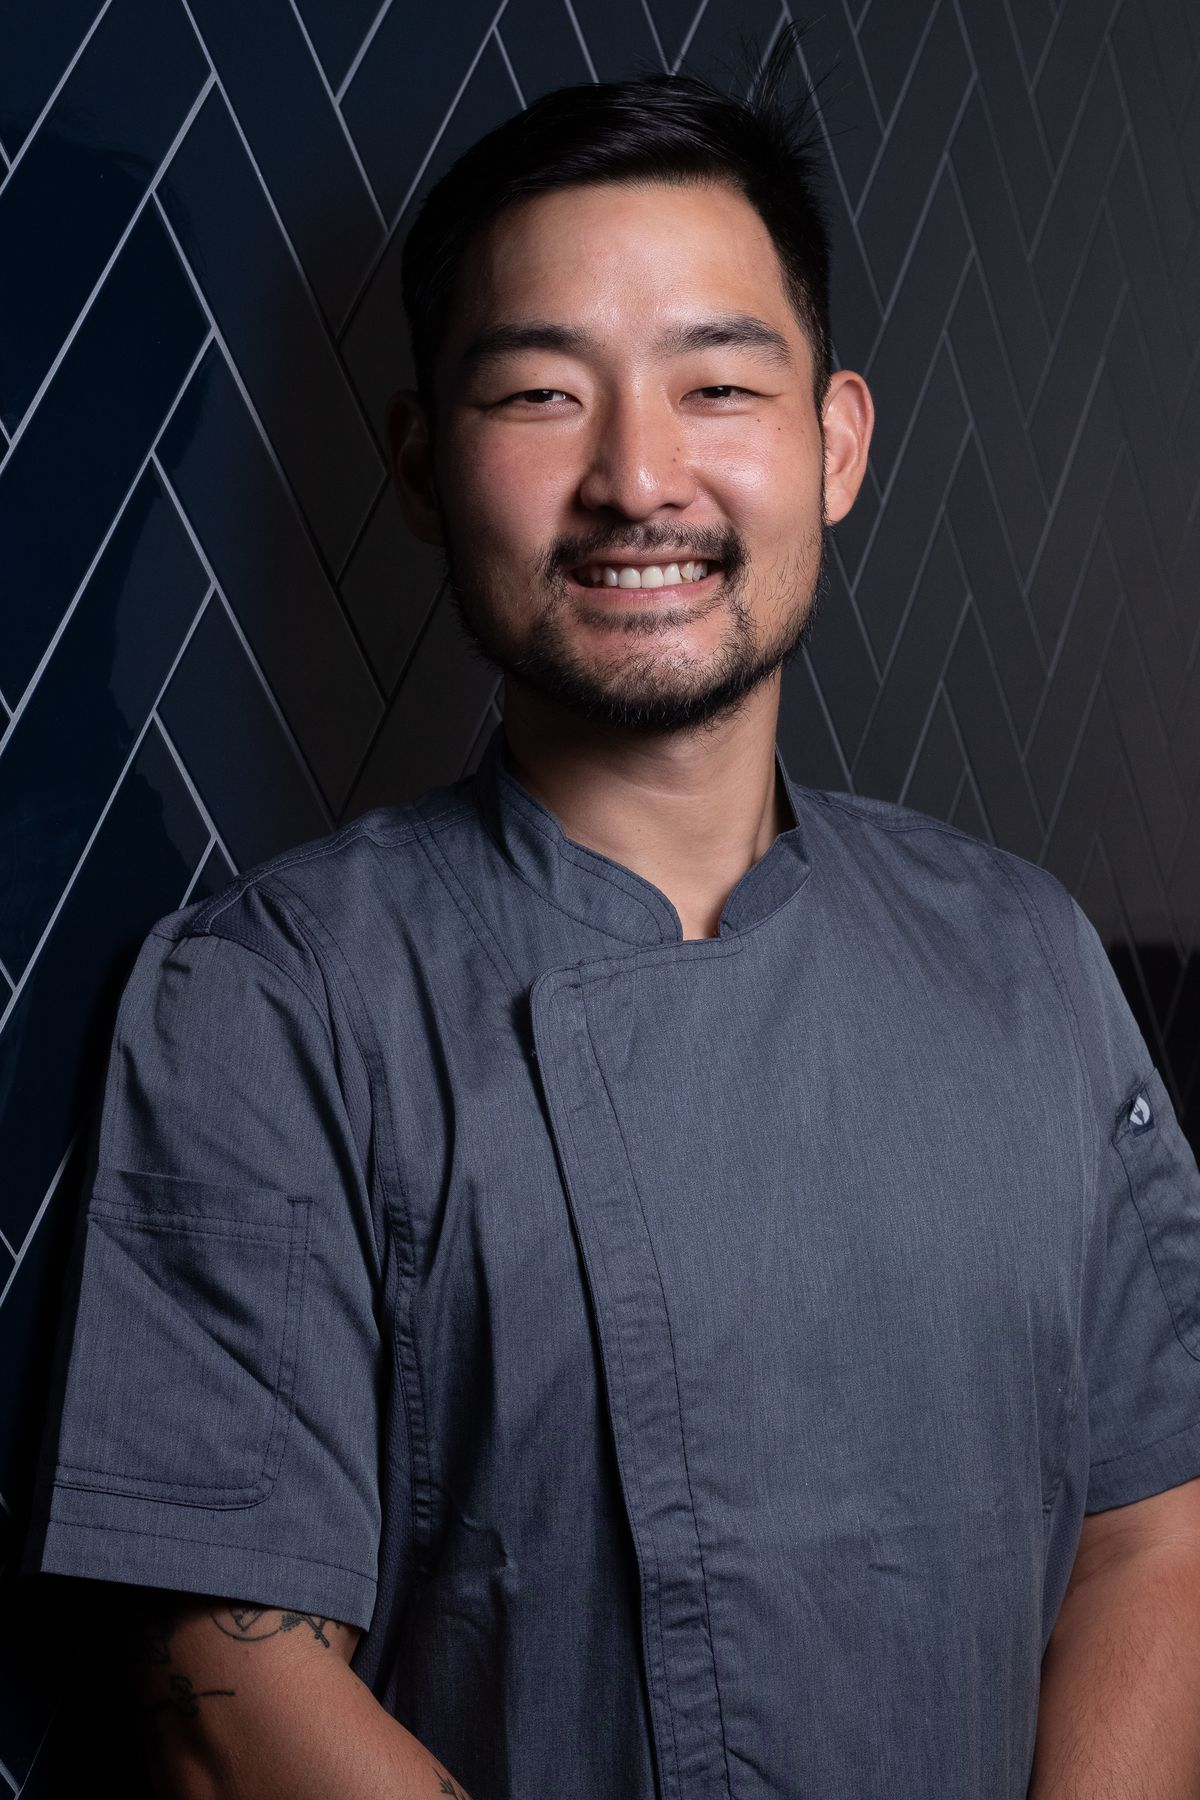 A portrait of a smiling male chef in a blue chef's coat.